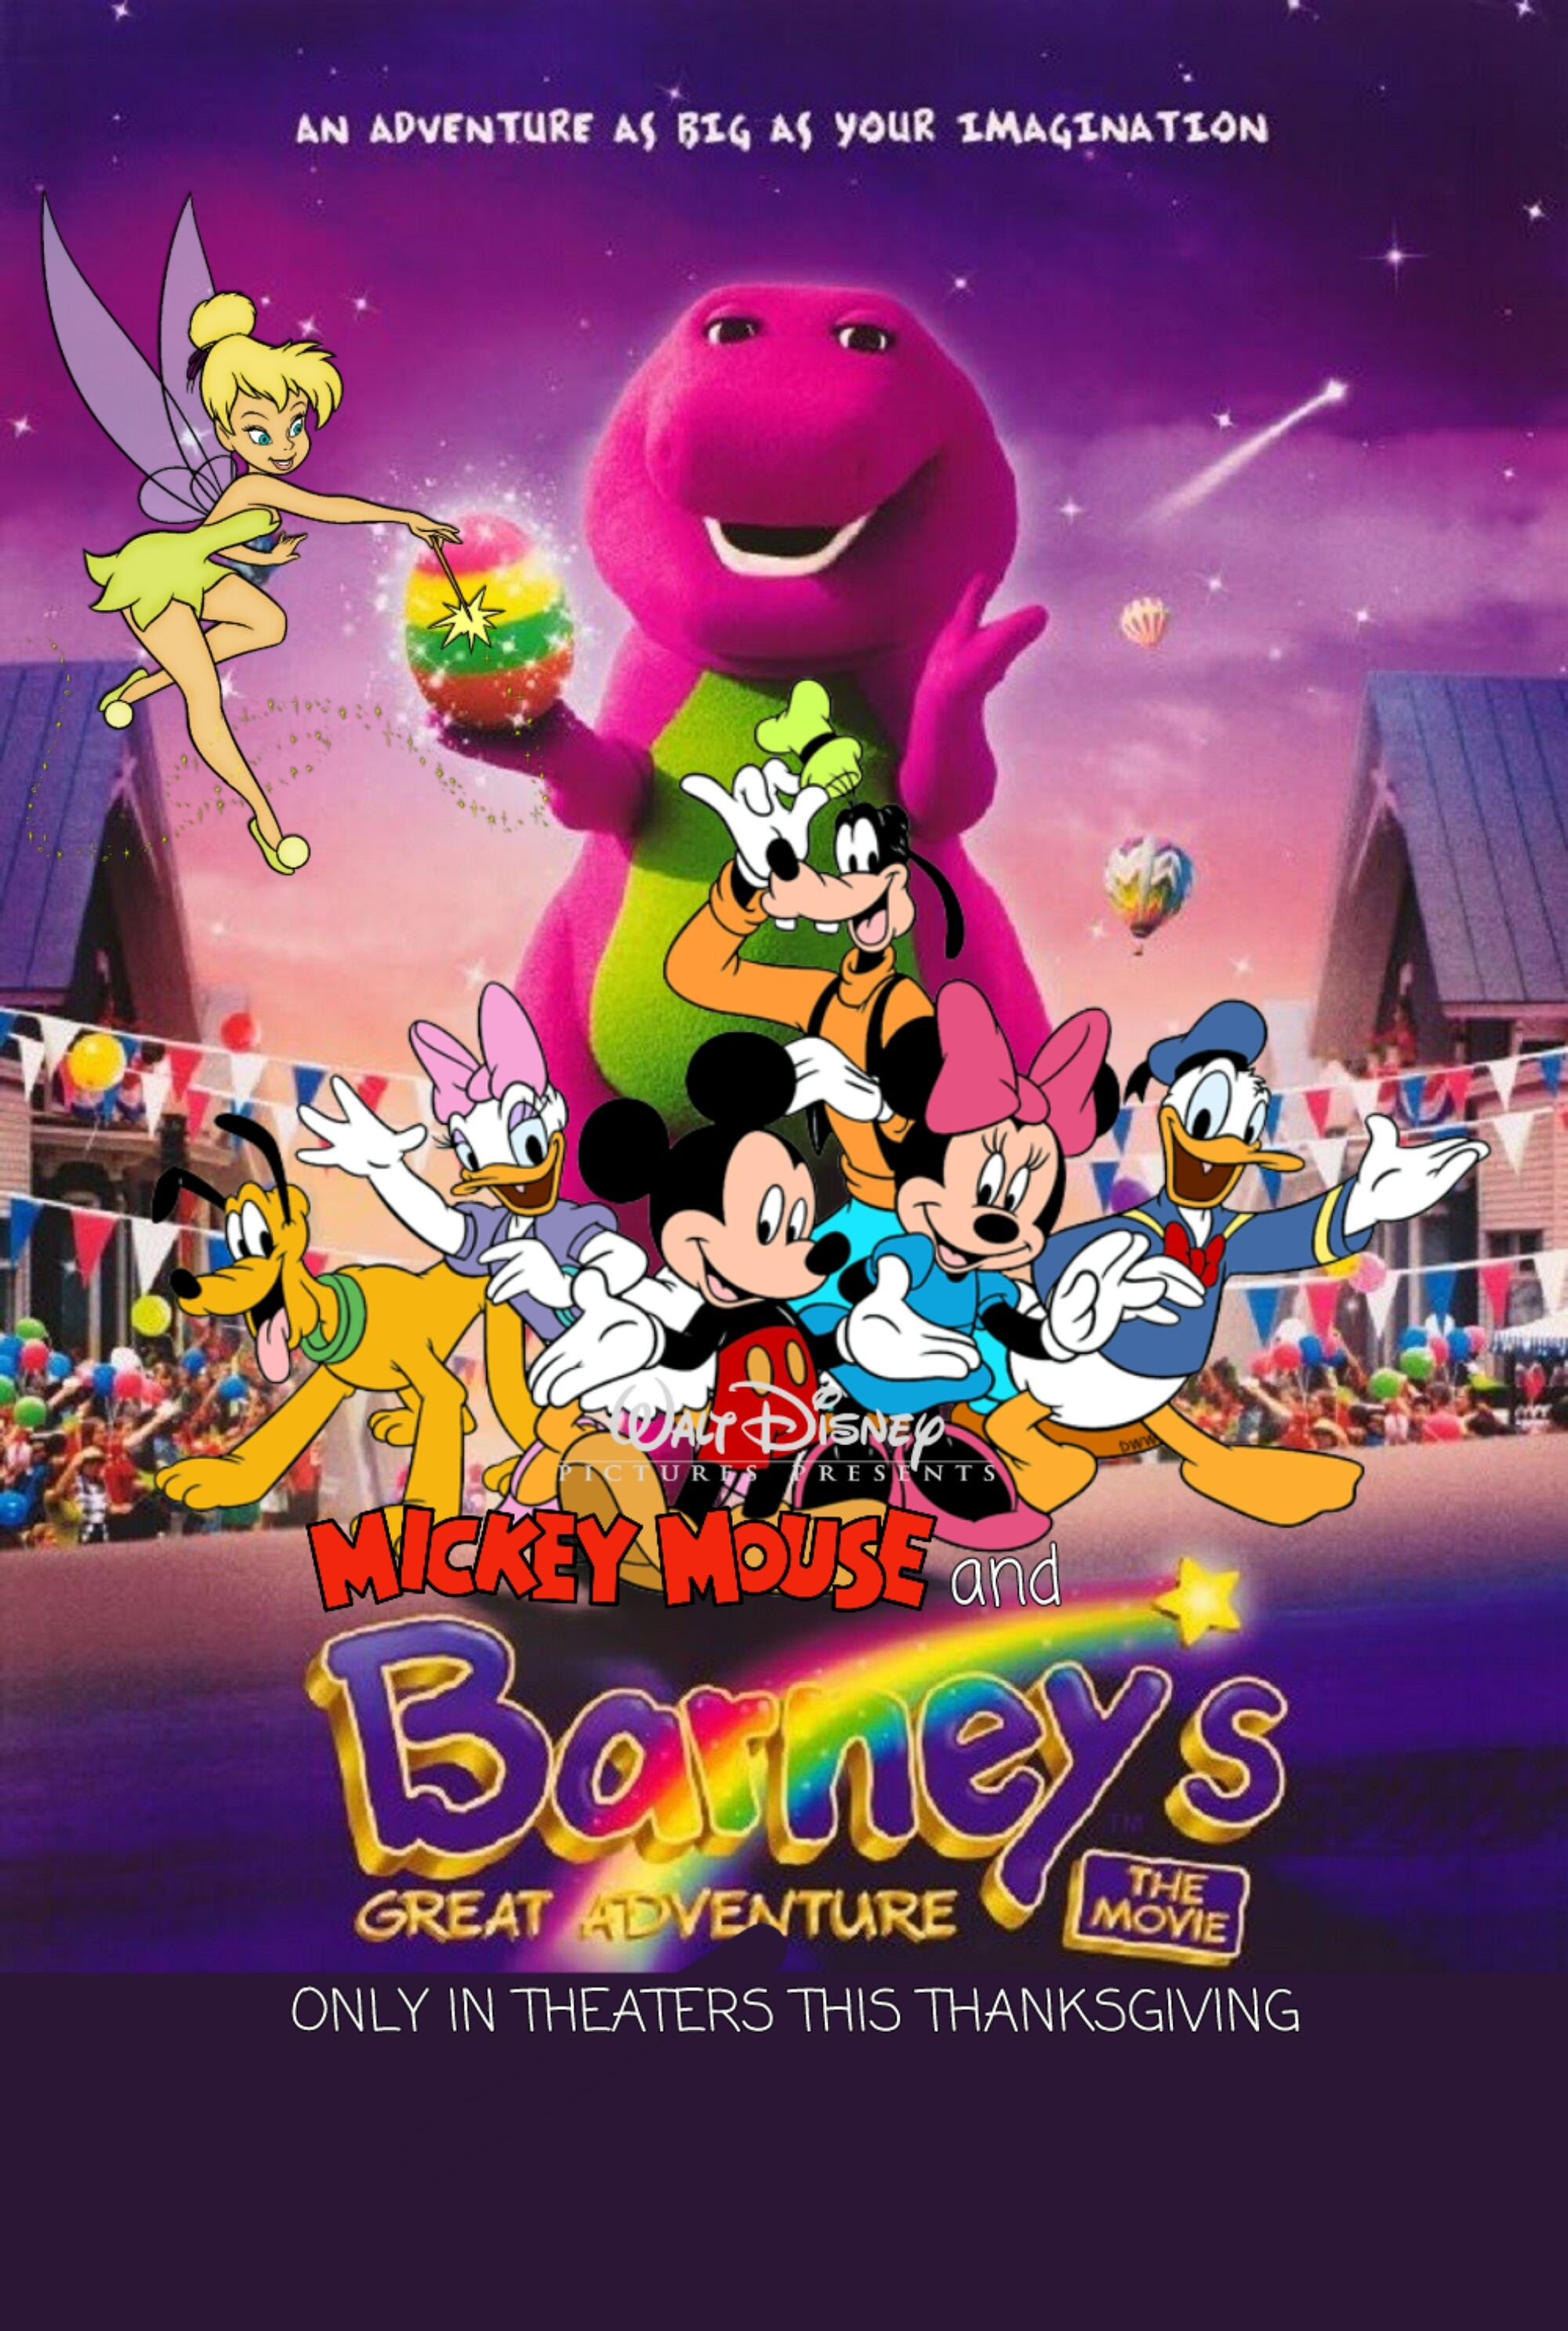 barneys great adventure the movie part 5 youtube